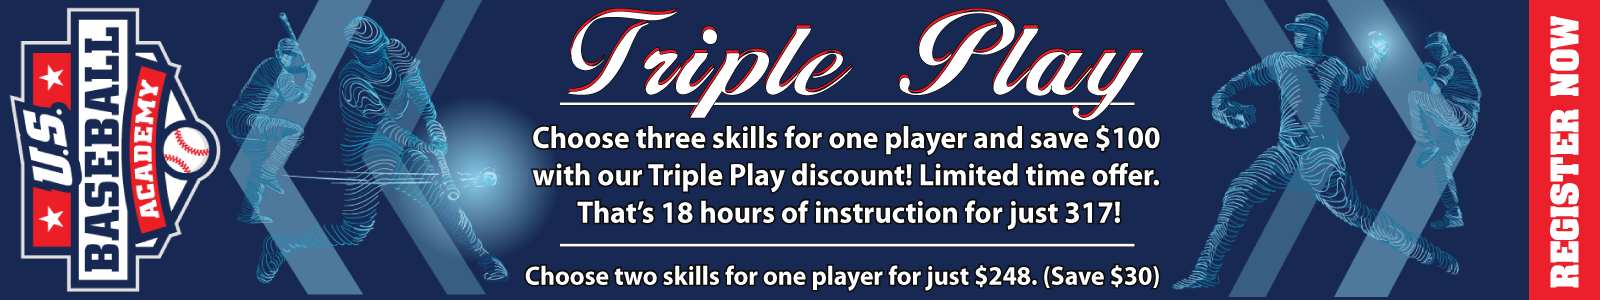 Triple Play Discount - Save $100